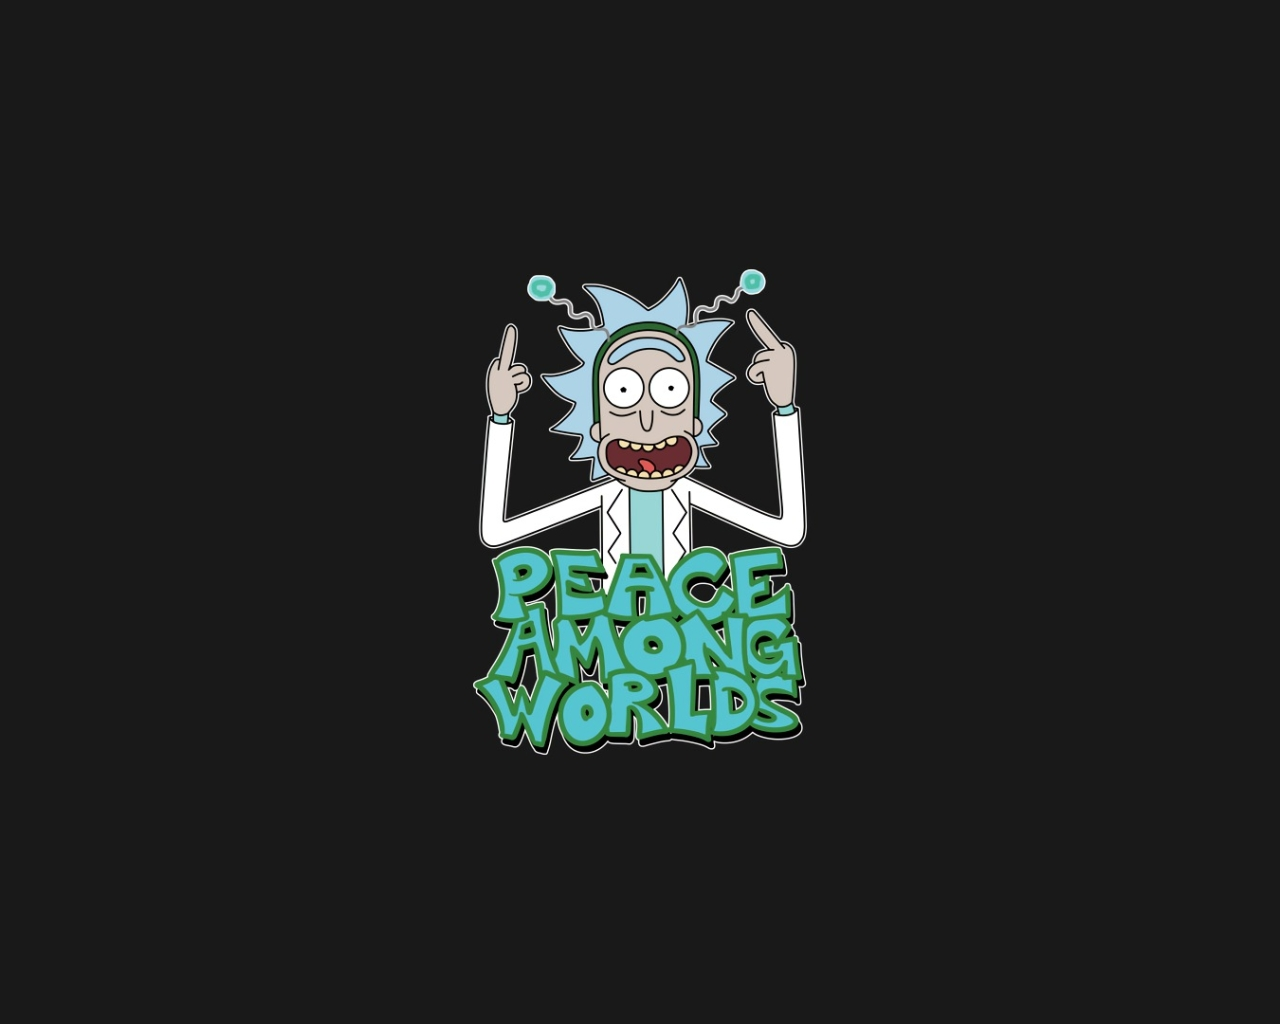 1280x1024 Peace Among Worlds Rick And Morty 1280x1024 Resolution